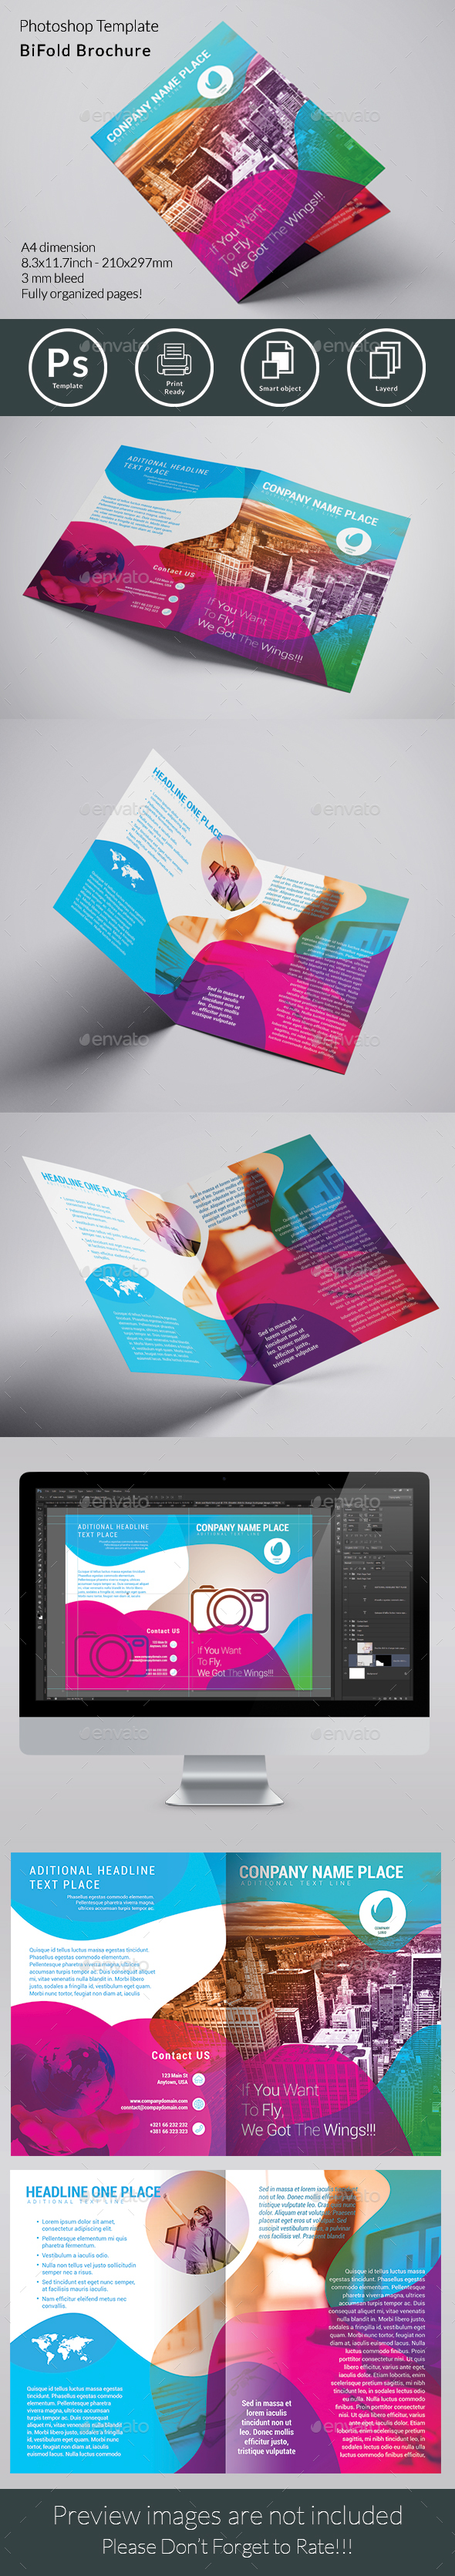 Abstract Bifold Brochure - Brochures Print Templates